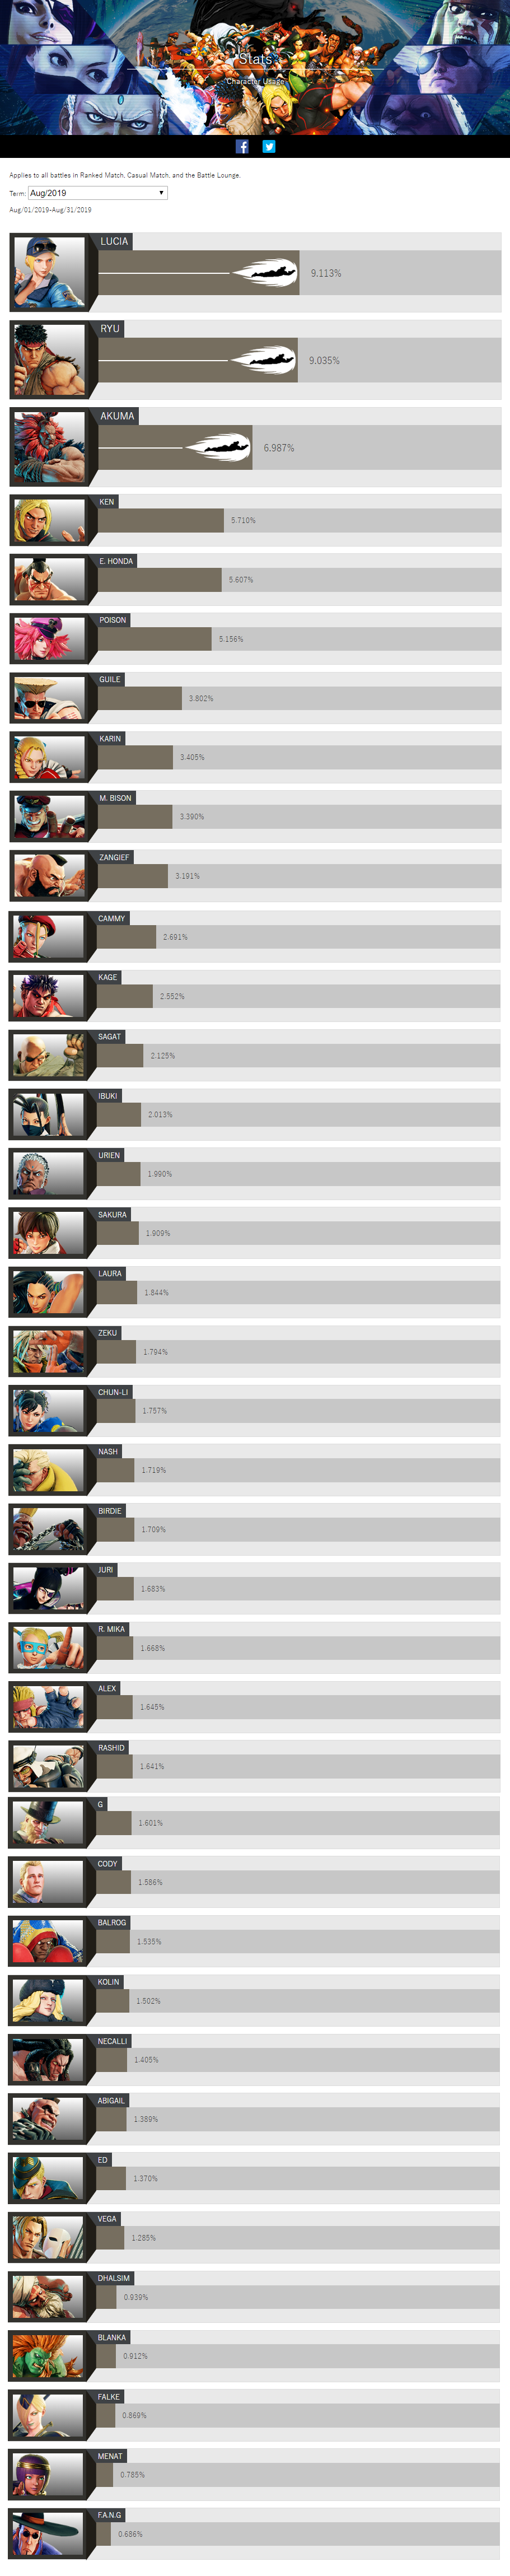 SF5 August stats 1 out of 2 image gallery